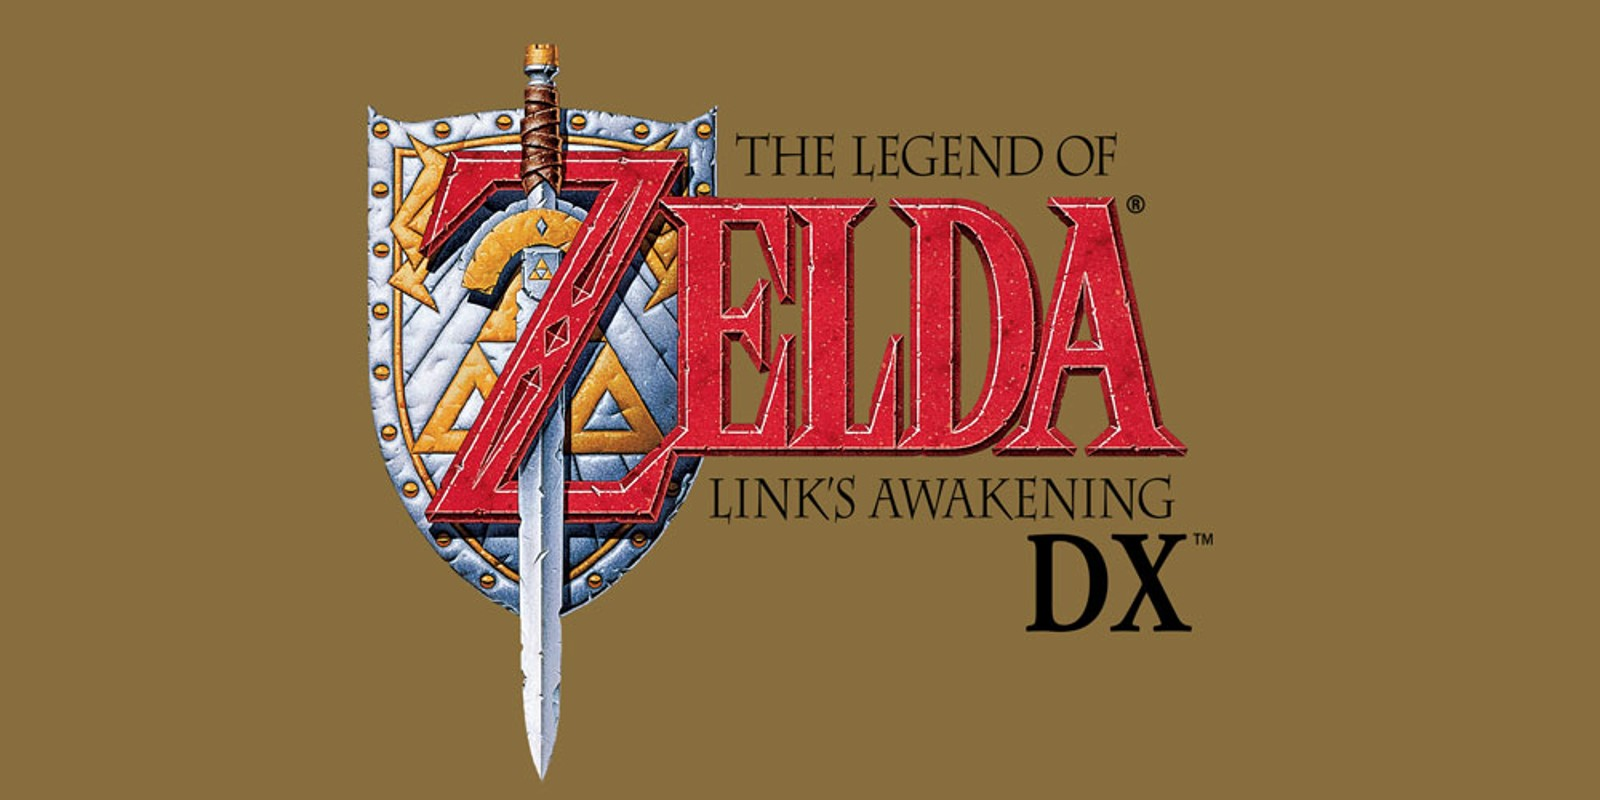 The Legend of Zelda™: Link's Awakening DX™